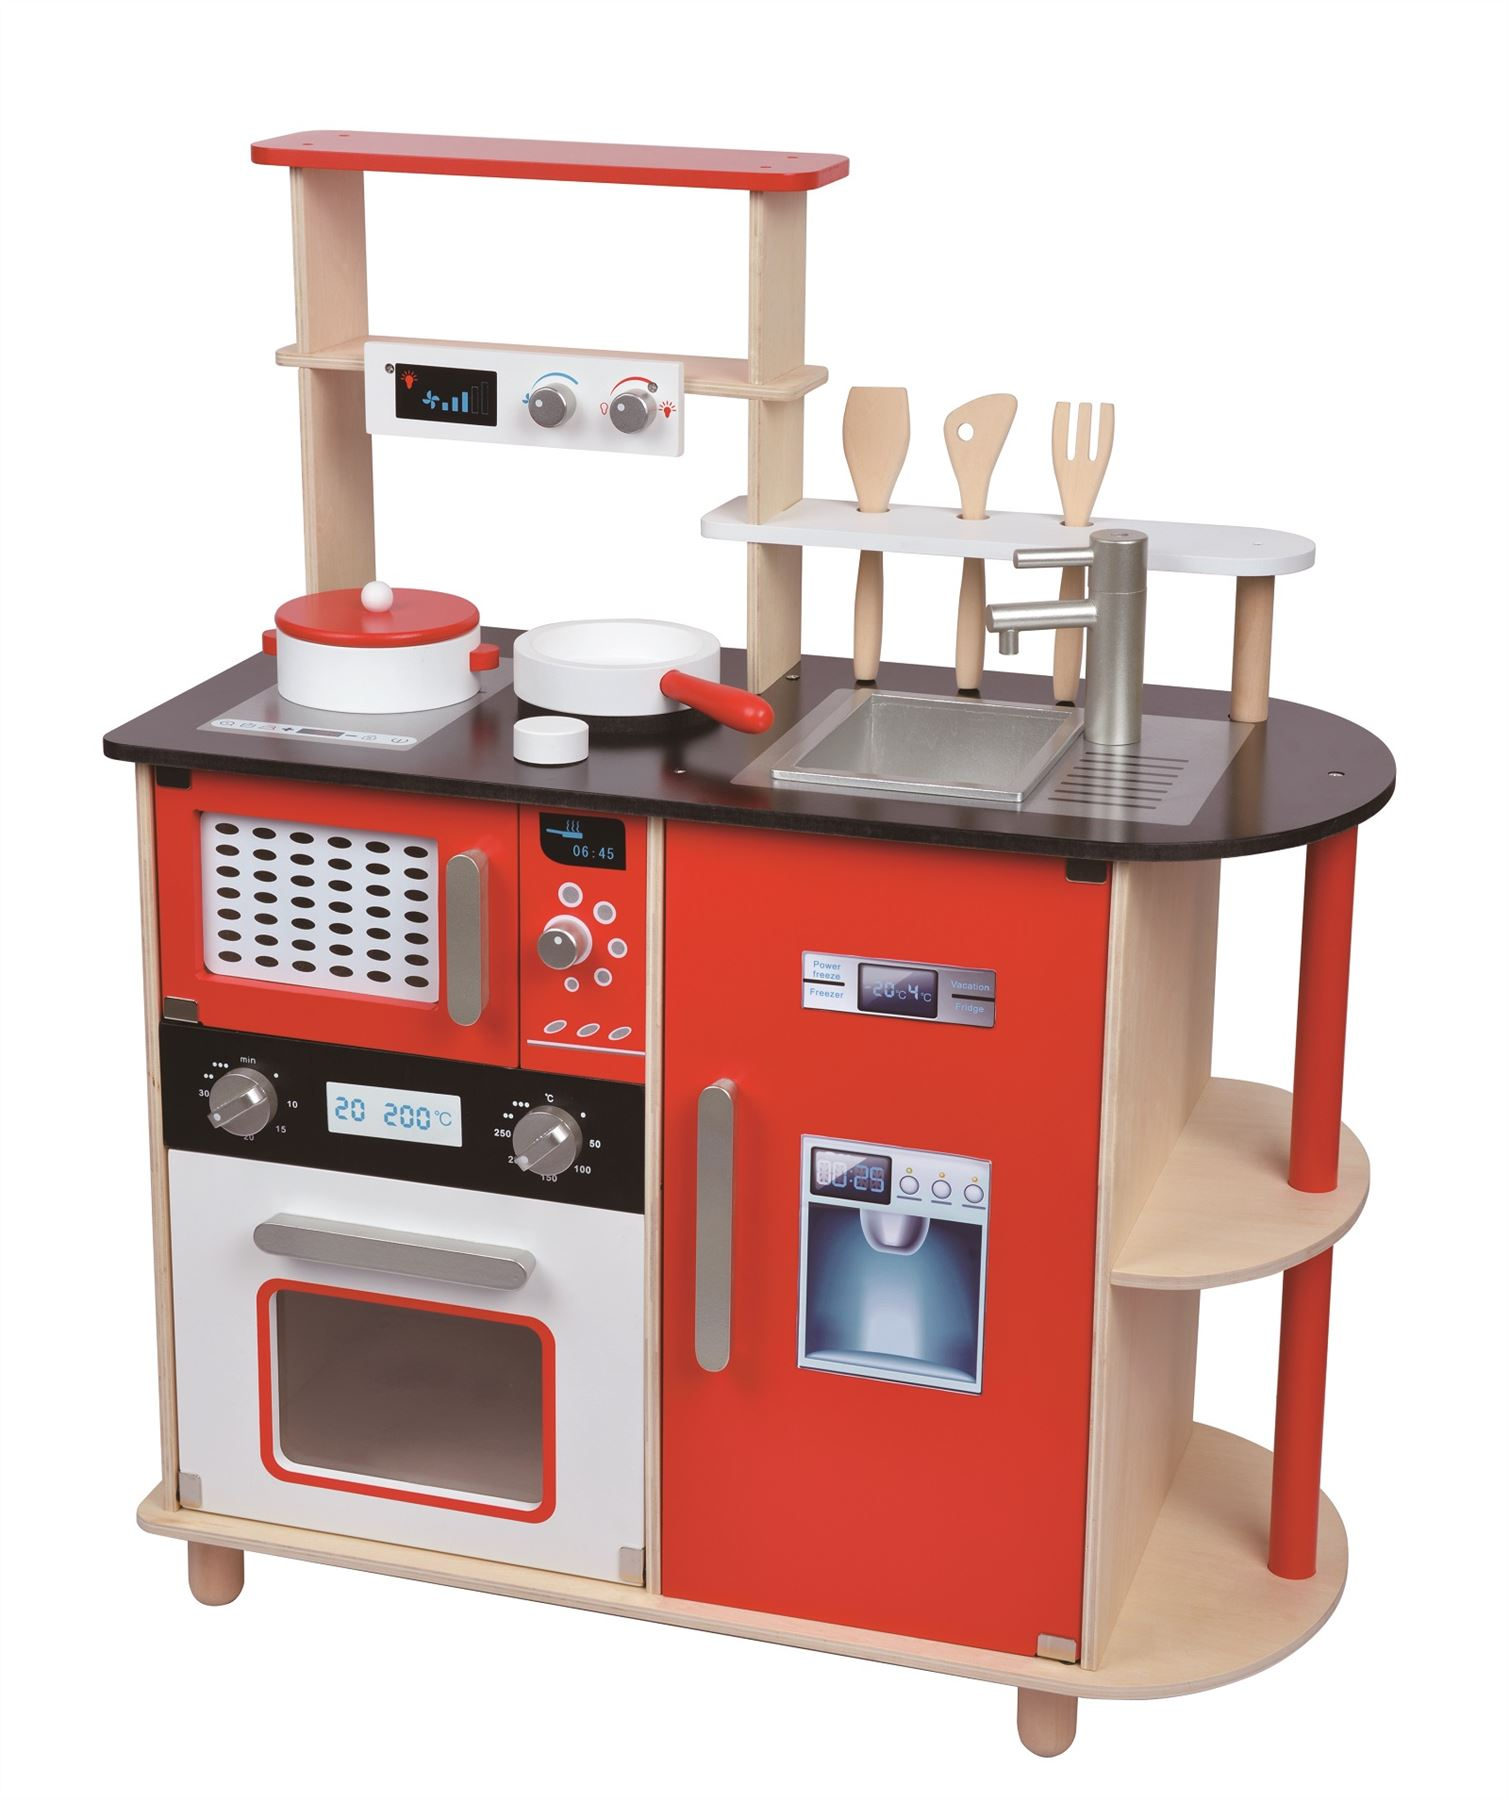 Lelin Wooden Childrens Pretend Play Modern Kitchen Cooking   -> Kuchnia Dla Dzieci Z Ekspresem